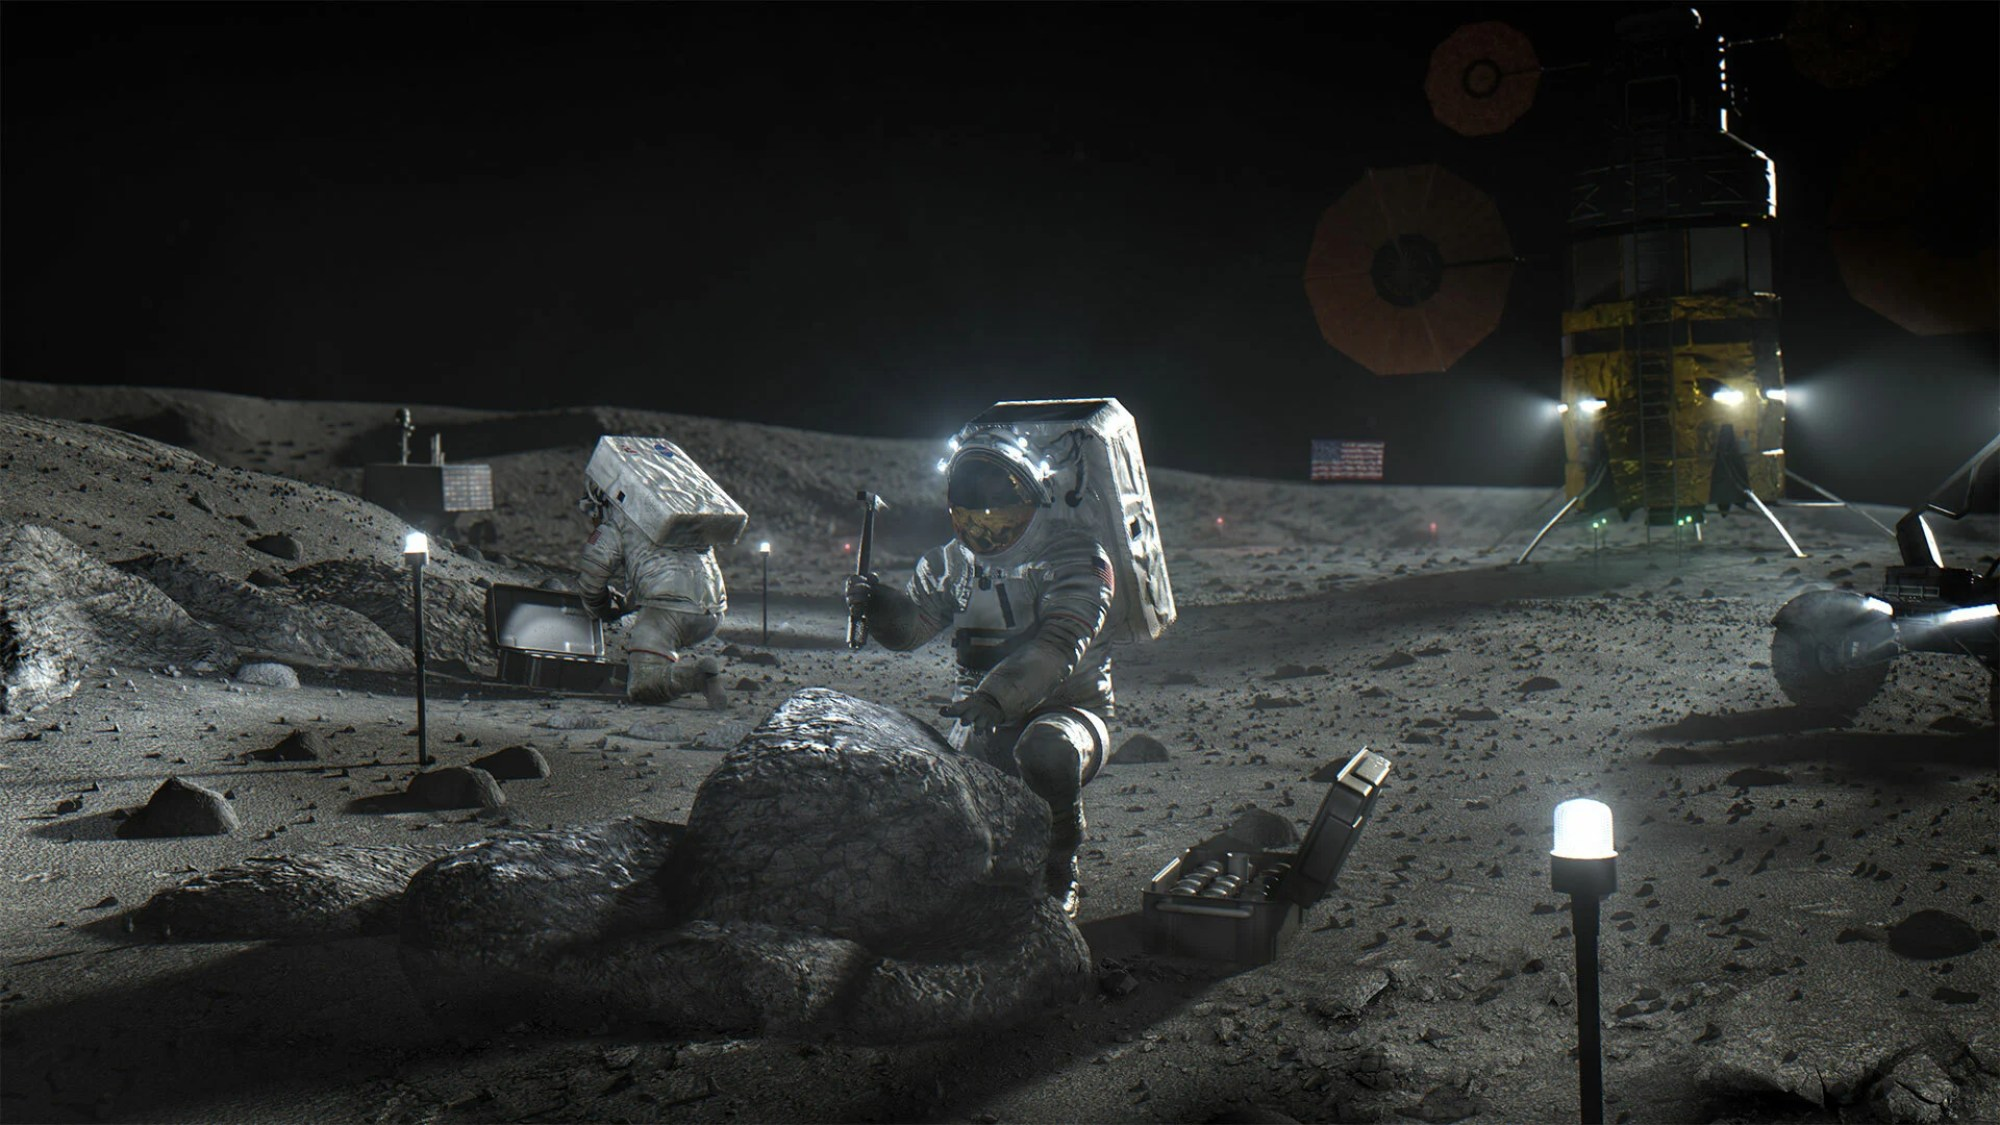 An illustration from NASA's official online materials about the Artemis program show astronauts working on the moon with a portion of a rover visible on the right.